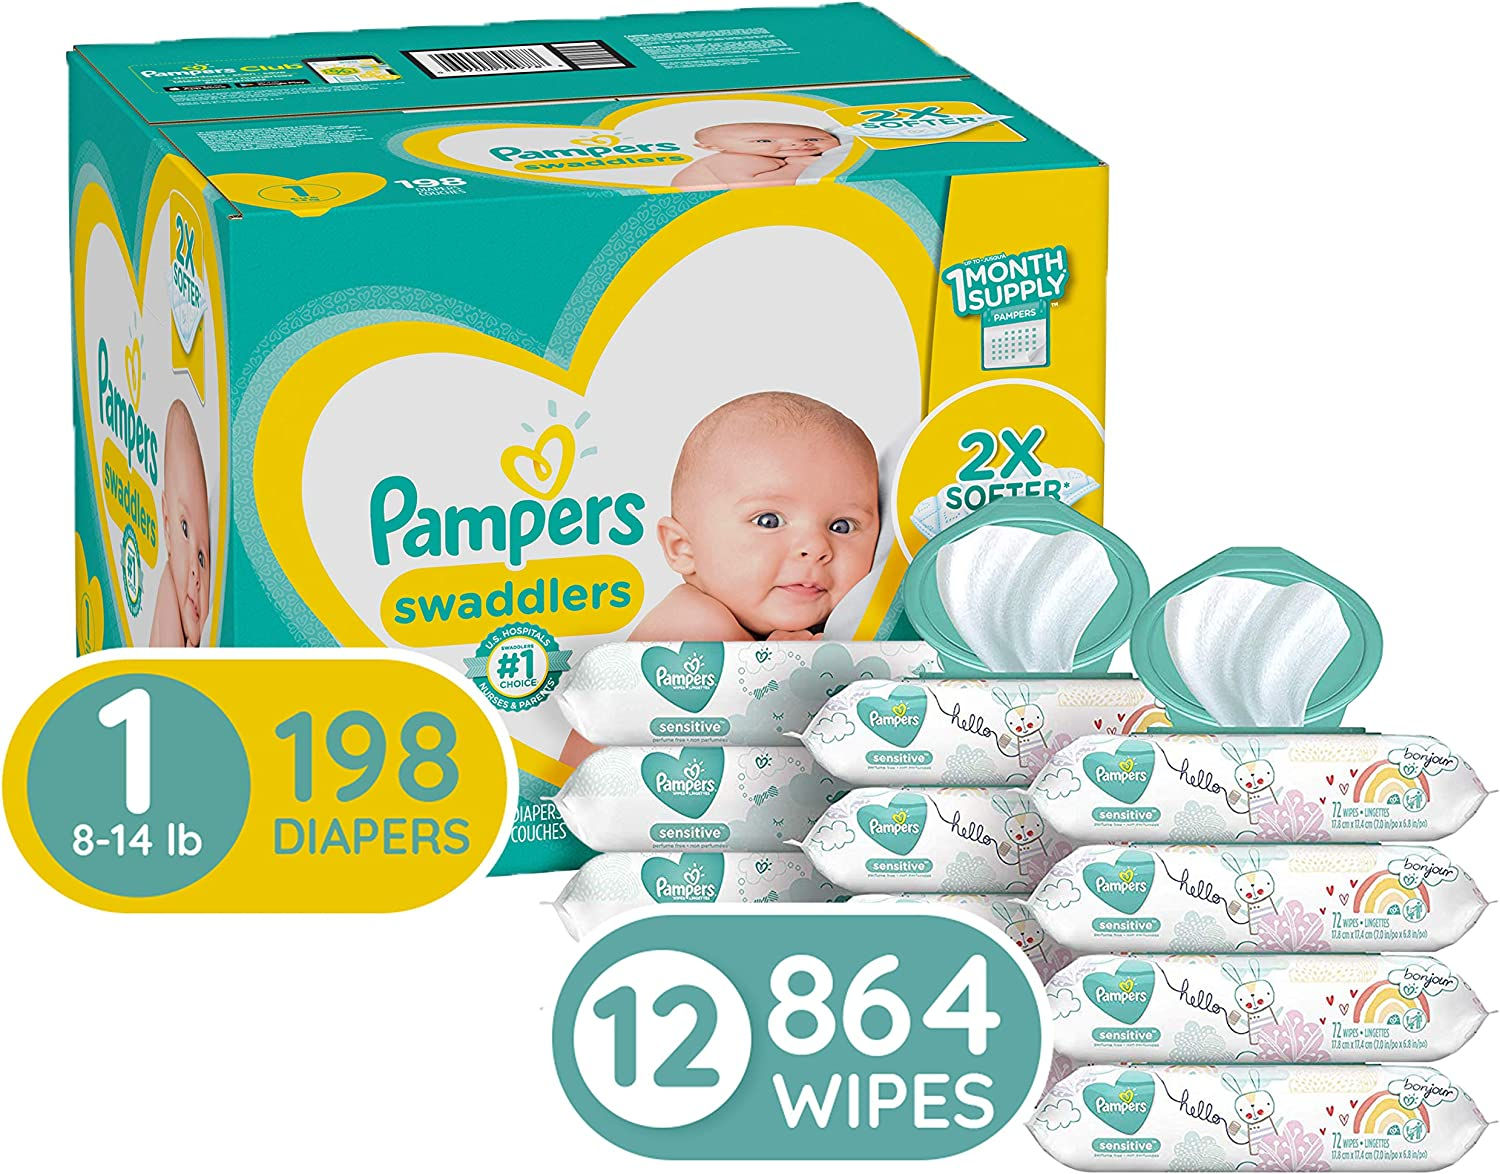 Diapers Newborn/Size 1 (8-14 lb), 198 Count and Baby Wipes - Pampers Swaddlers Disposable Baby Diapers, ONE Month Supply with Pampers Sensitive Water Baby Wipes, 12X Pop-Top Packs, 864 Count